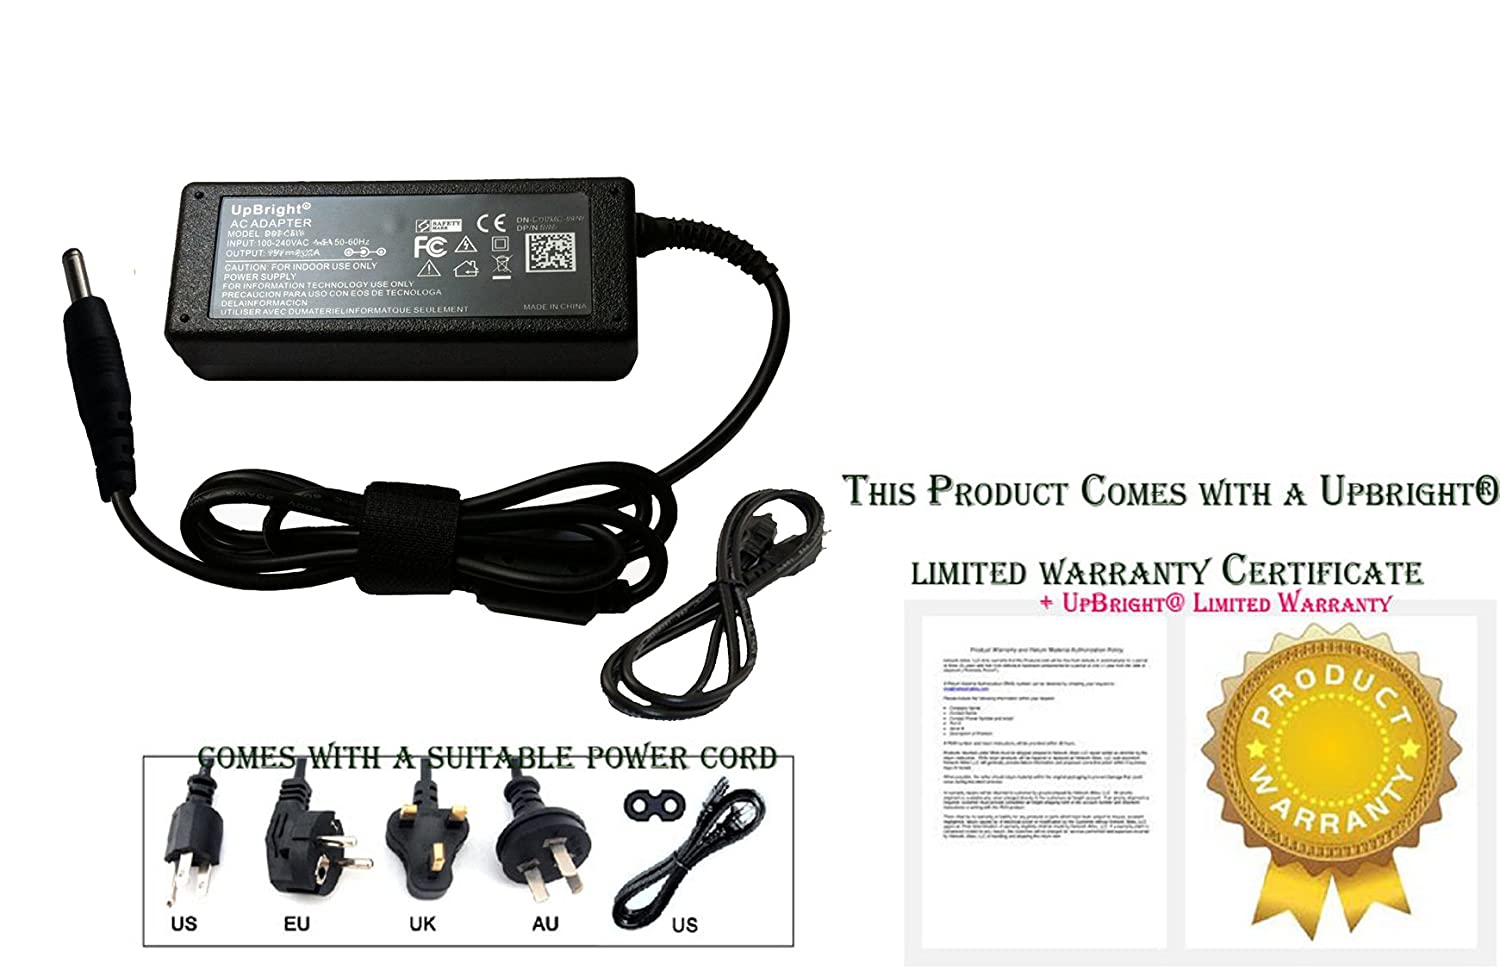 Amazon.com: ASUS 19V 2.37A 45W AC Adapter for Asus Zenbook UX21E and UX31E Series Notebooks (ADP-45AW): Computers & Accessories